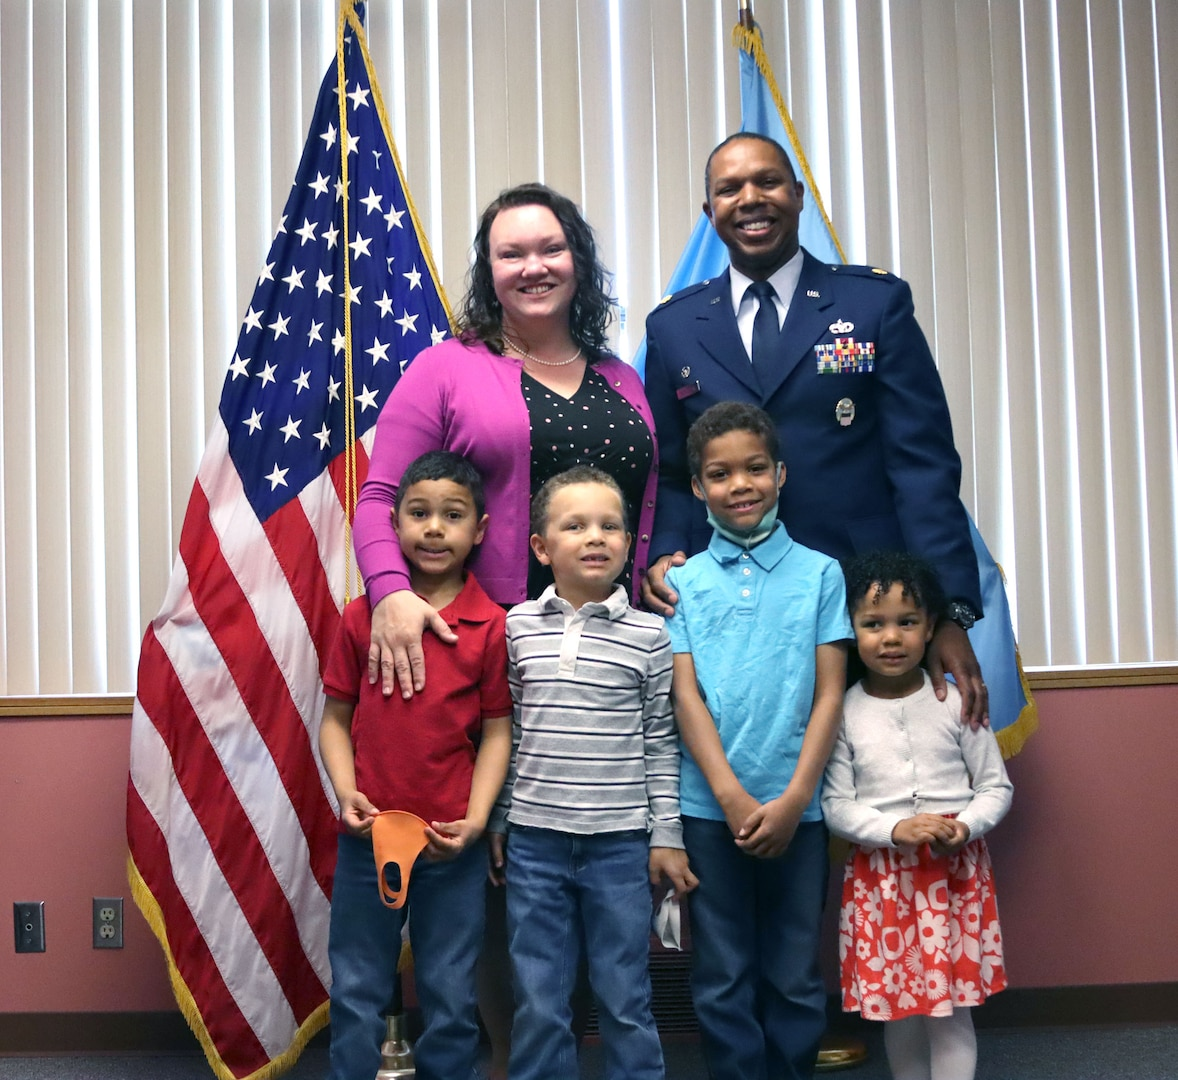 a military man in uniform stands with his wife and four kids